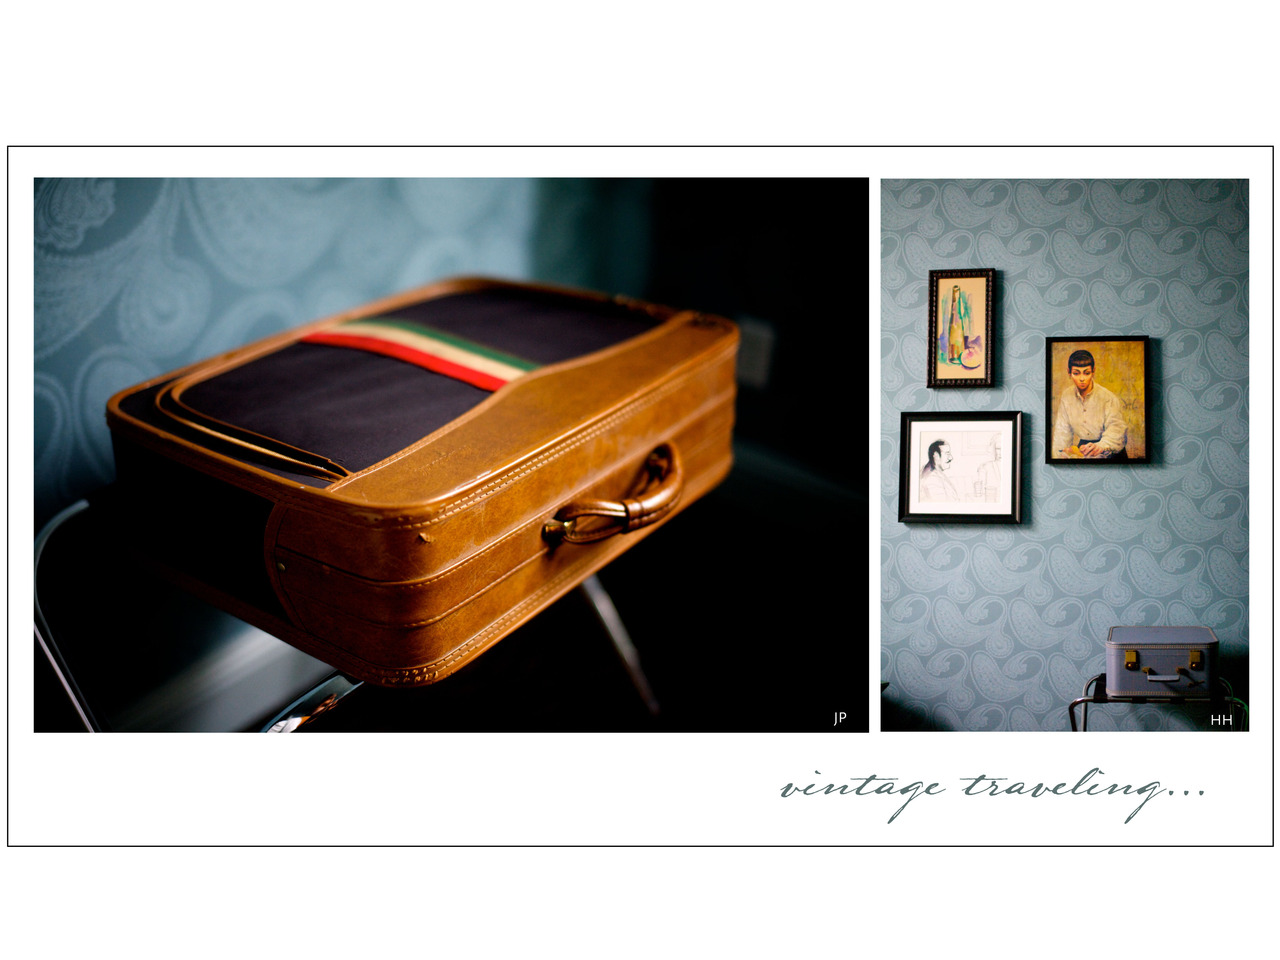 I love the photos of these suitcases.  Makes me want to book a bed and breakfast somewhere off the coast of Nantucket, not sure why that place comes to mind, never been there.  I thought you might enjoy this, I got this from your Aunt Helena's blog. Find yourself a nice suitcase and travel the world.  You cannot truly enjoy all of life's beauty or find all the answers to your questions sitting around at home.  Get the 'eff out of Dodge… I had the rare opportunity to live in so many far off places.  My advice, do not limit your travels, get off the beaten path and you will be surprised at what you find.  I have visited some amazing places, from bustling cities to tiny little villages, where their idea of a bathroom was a hole in the ground.  In fact, I graduated high school in Del Rio Texas, that town looked like it was ripped right out of the movie Napoleon Dynamite.  My point is this, the contrast between how each population views the world is just as interesting as the places themselves.  Don't fall into the trap that the US is the center of the world.  See the world and be humbled. So, I hope you make time to travel as you get older.  Or maybe attend school studying abroad.  In fact, go live somewhere outside of home base… just make sure you limit that time to a year, we don't want you to be away for too long. ps  Semester at Sea doesn't count, I know what happens on those ships… you're not going.